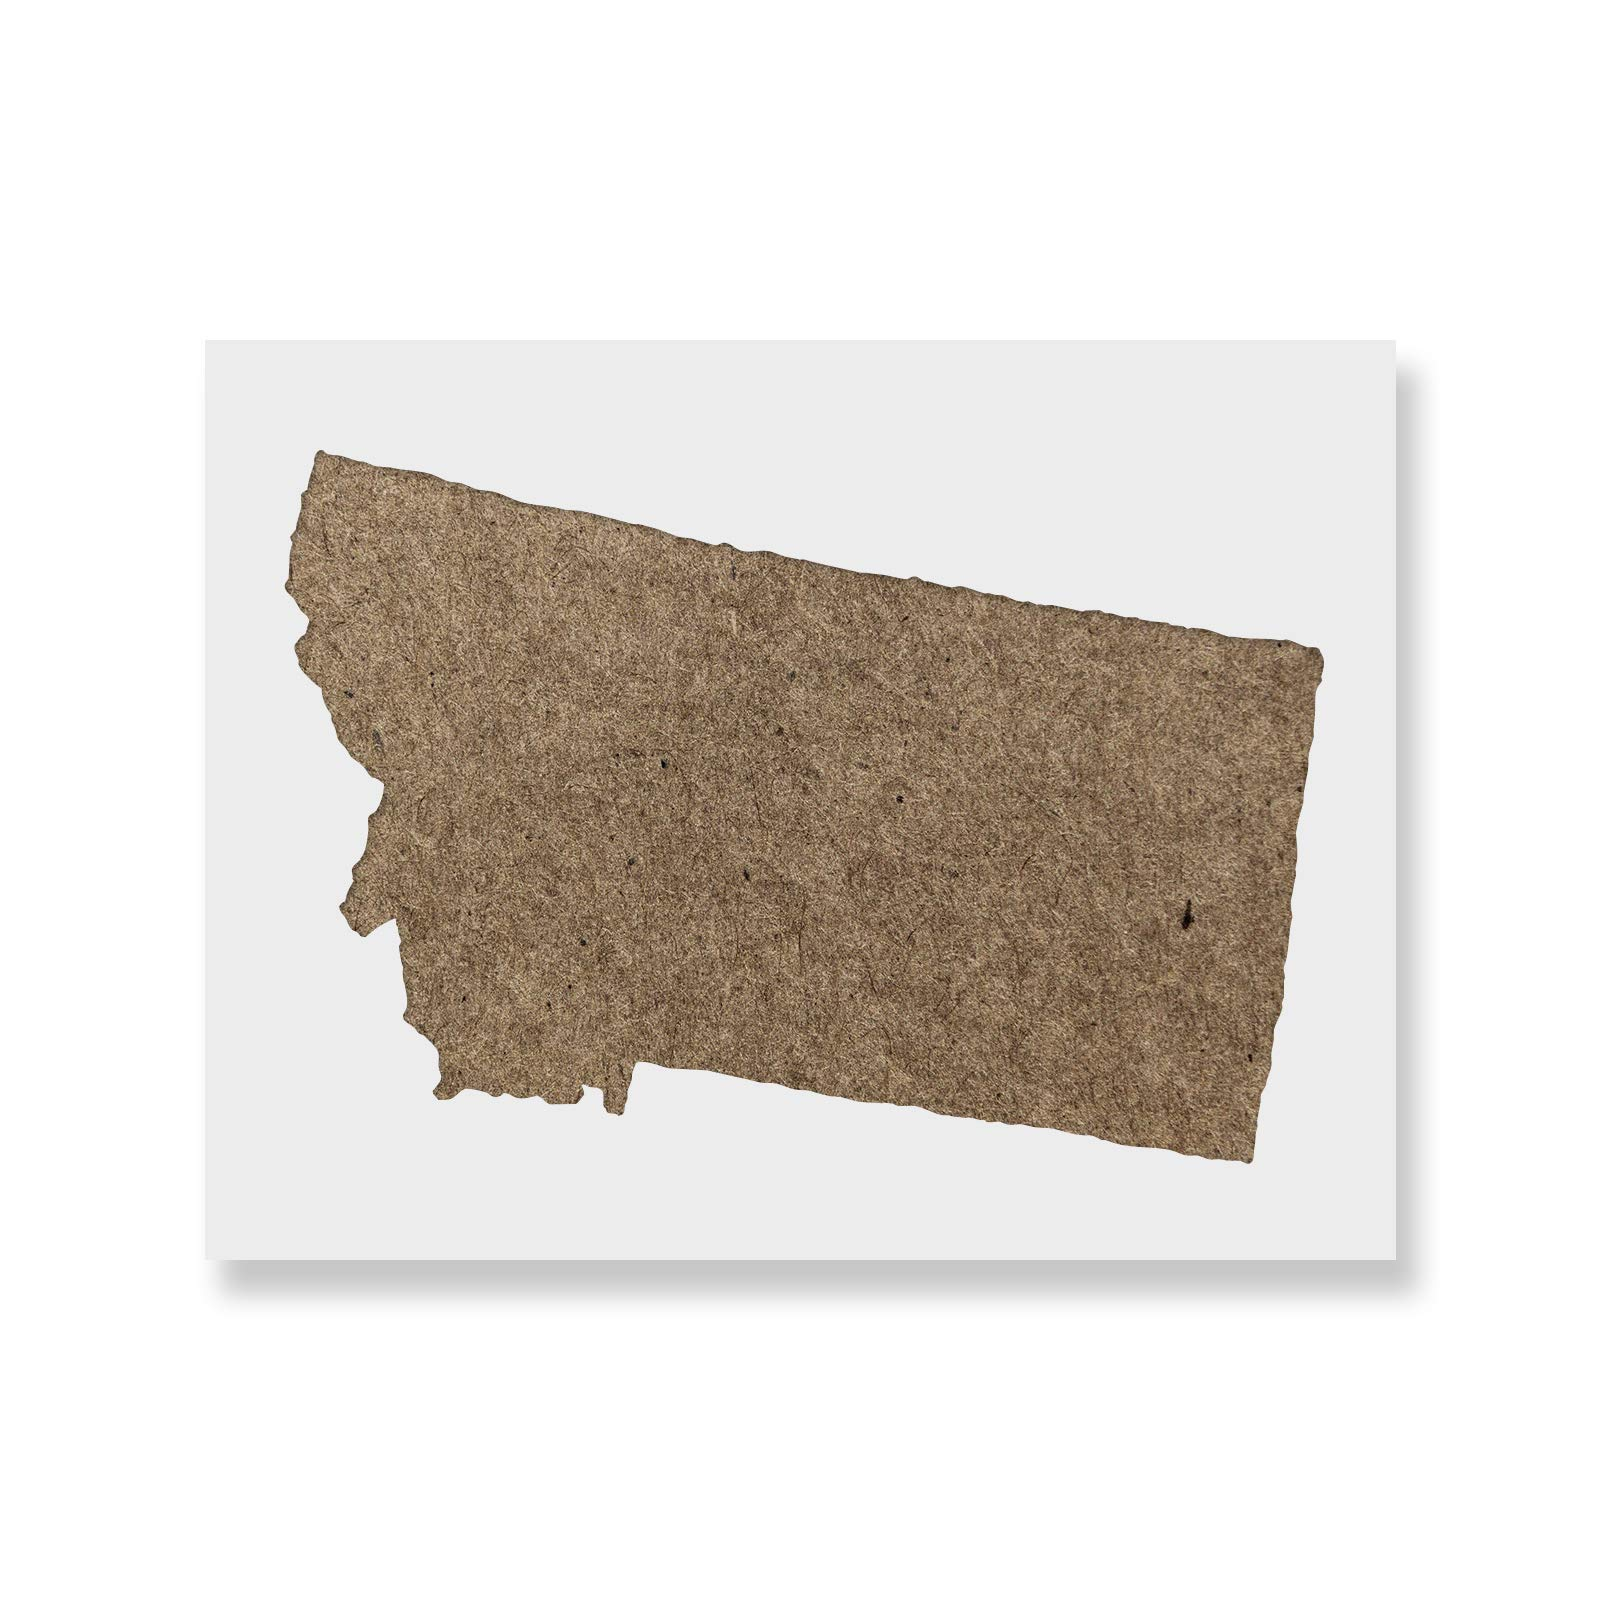 Montana State Stencil Template - Reusable Stencil with Multiple Sizes Available by Stencil Revolution (Image #1)